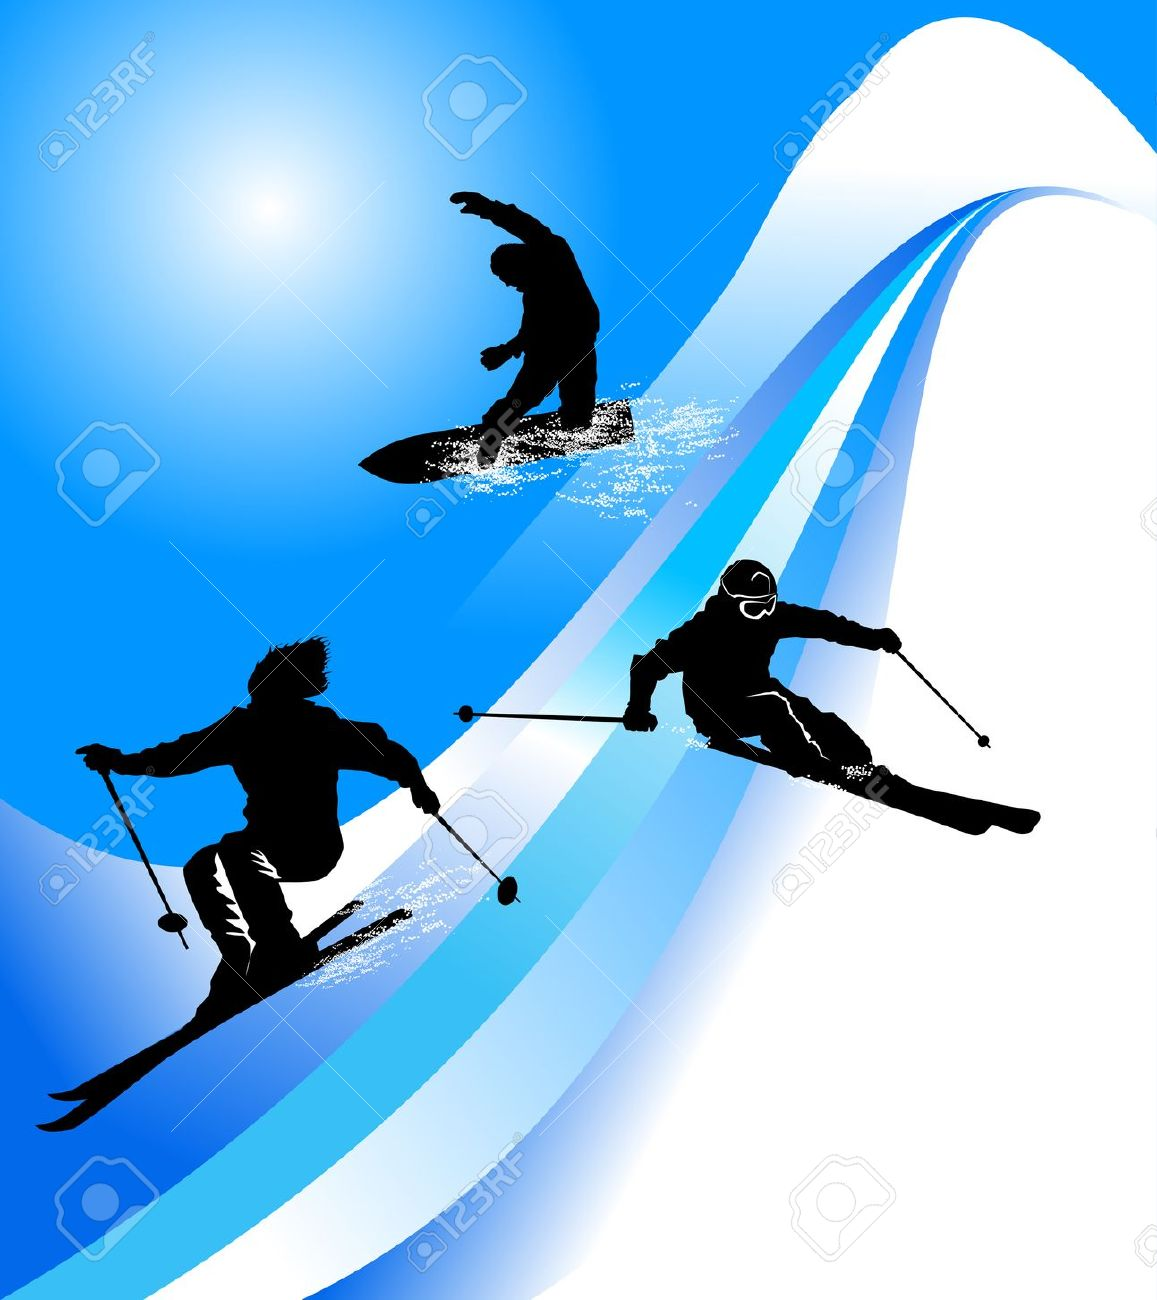 Skiing clipart mountain skiing Clipart snowboarding snowboarding and Skiing